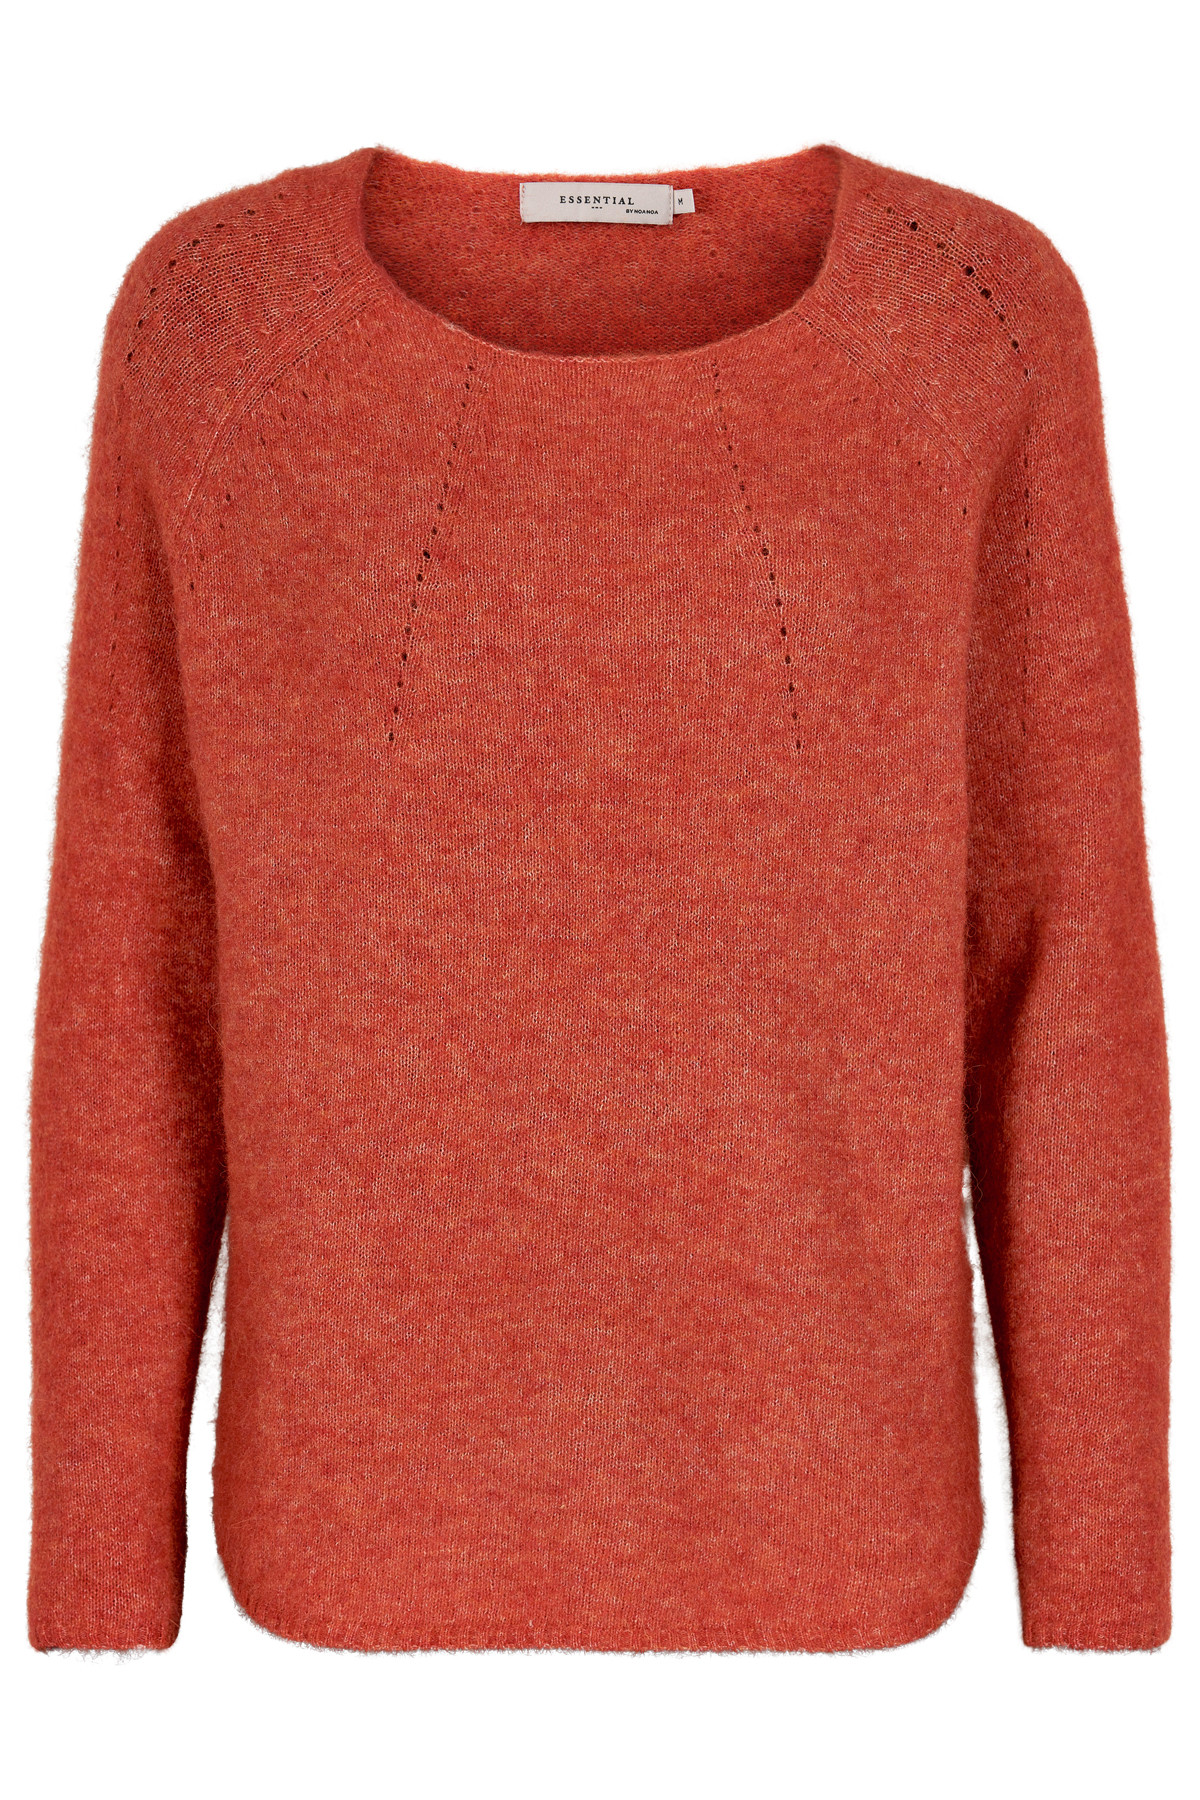 Image of   NOA NOA PULLOVER 1-8999-2 01068 (Red, XXS)